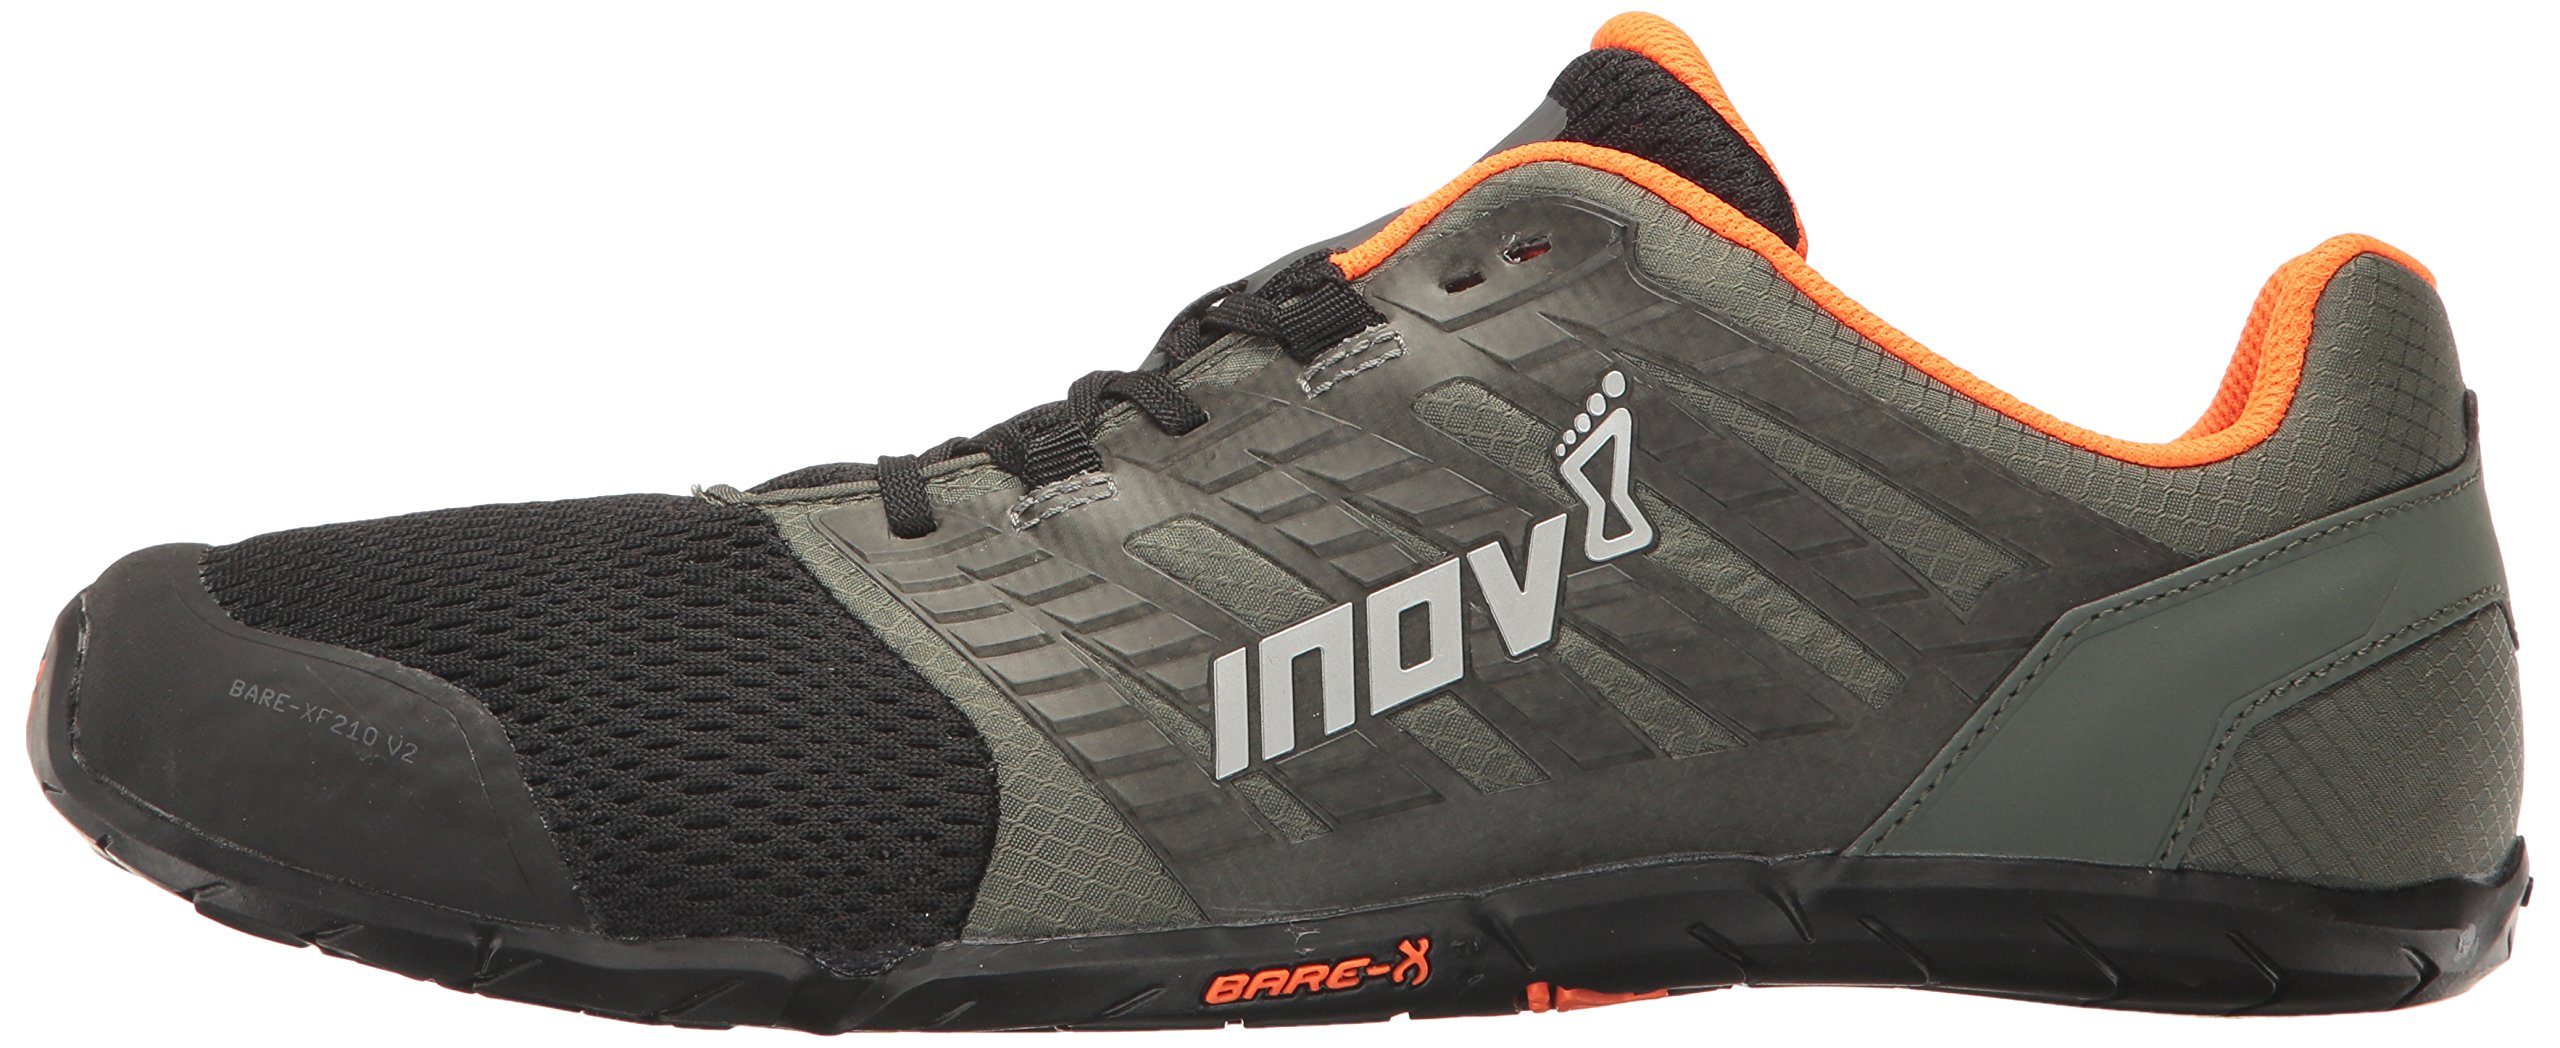 Inov-8 Men's Bare-XF 210 v2 (M) Cross Trainer Grey/Black/Orange 9 D US by Inov-8 (Image #5)